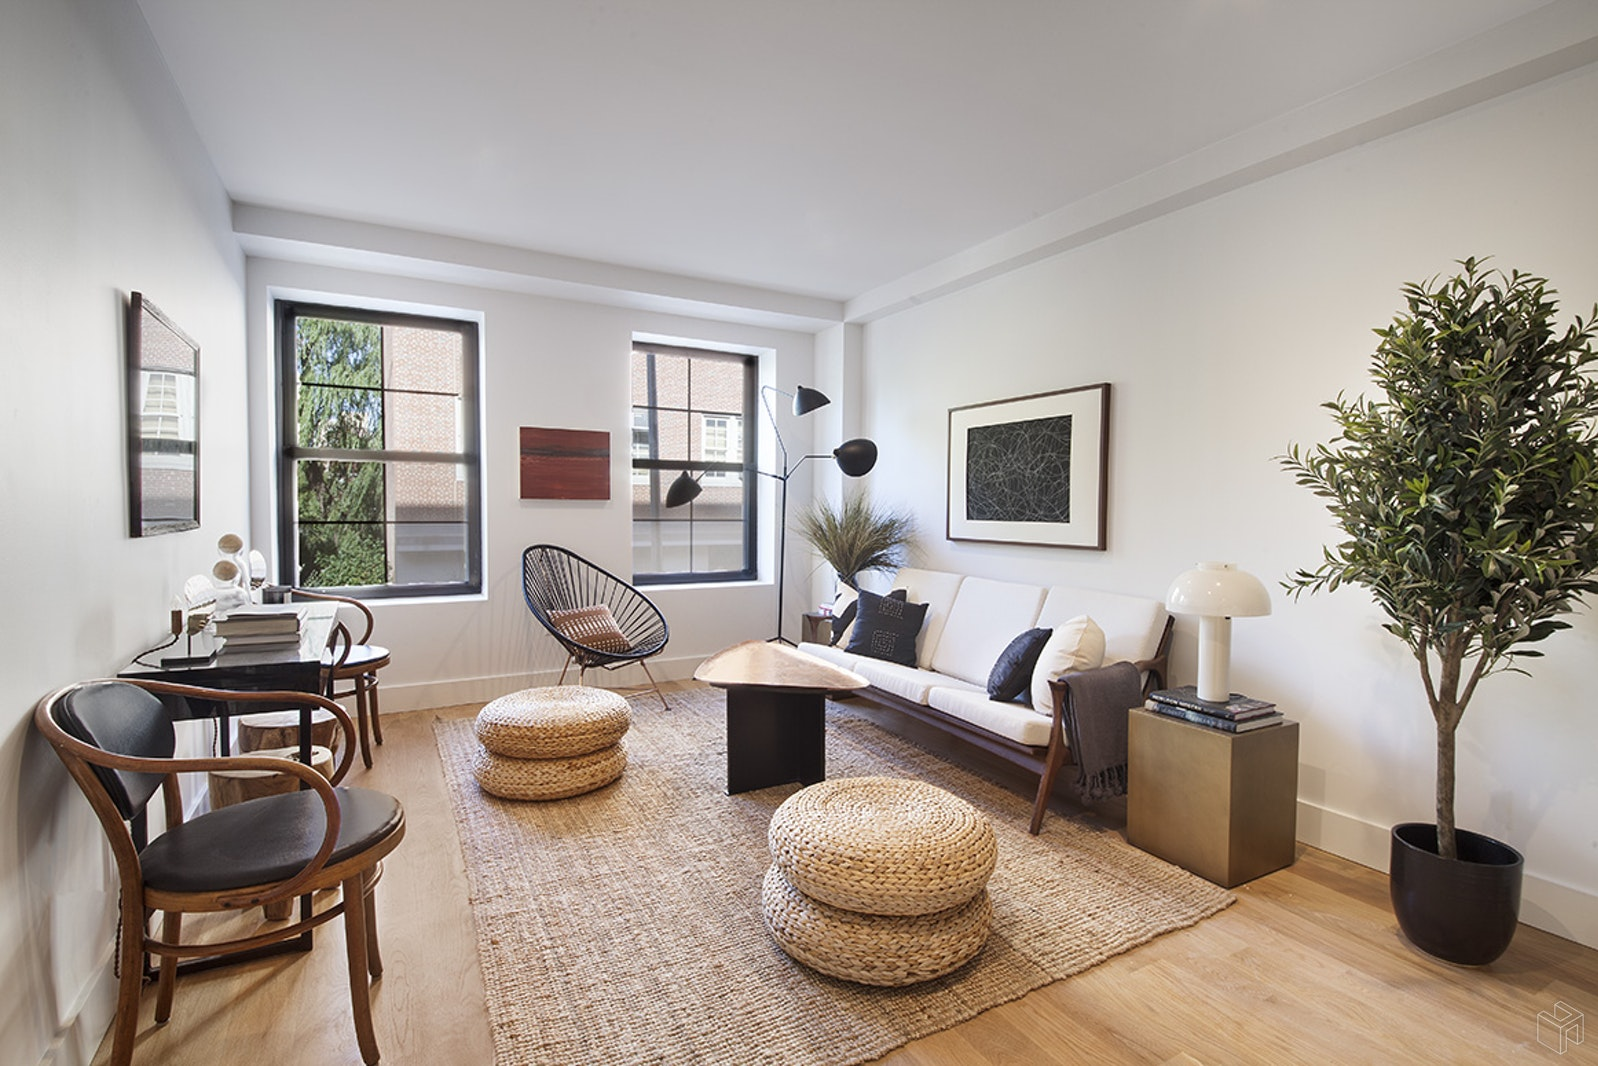 324 East 4th Street, East Village, NYC, 10009, Price Not Disclosed, Rented Property, Halstead Real Estate, Photo 1